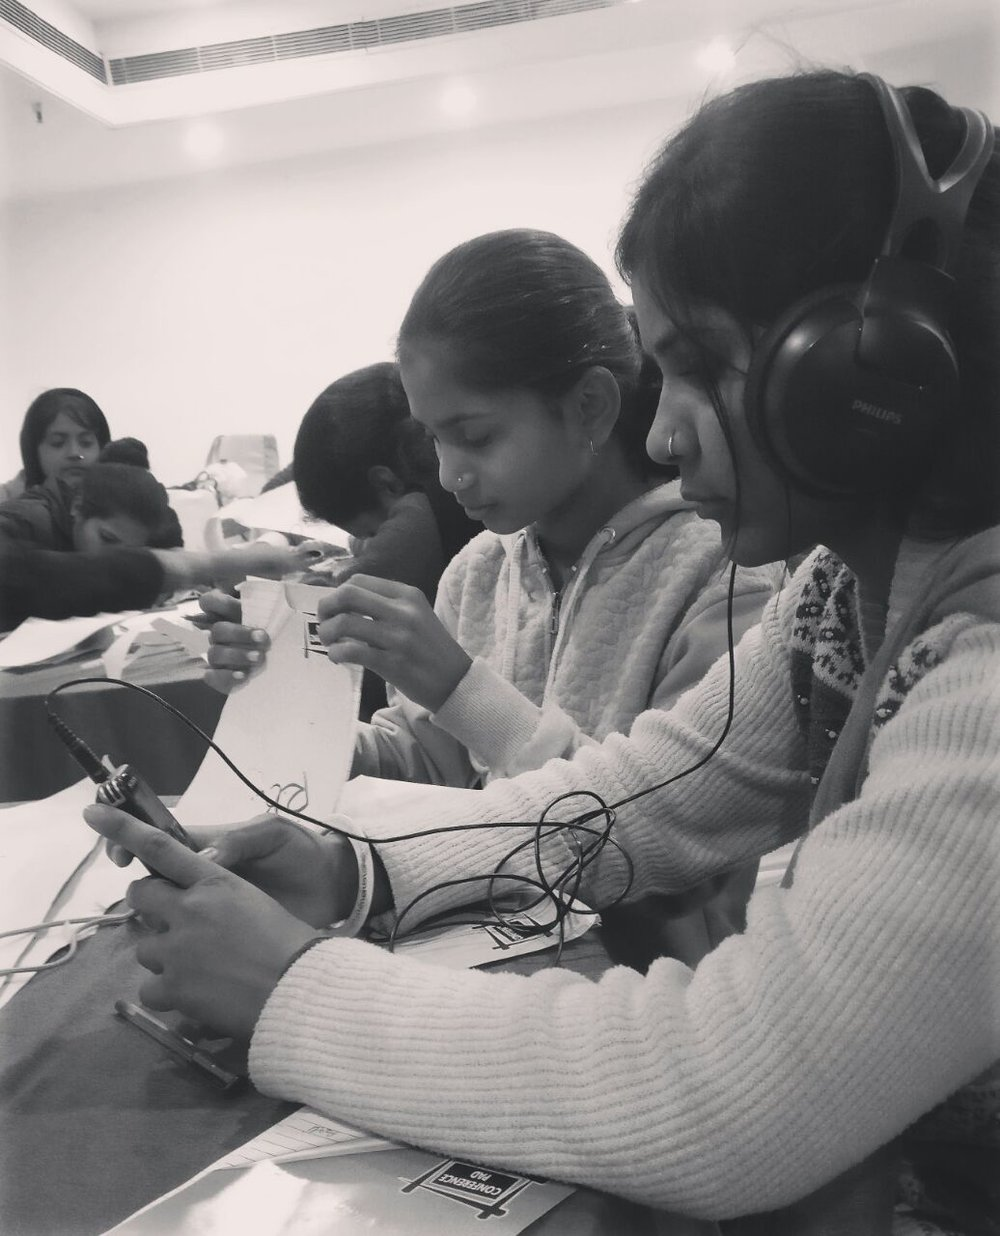 The Butterfly Project Curriculum driven programme on enabling young women from marginalised communities in low-resource settings to creatively address gender & discrimination through digital media.